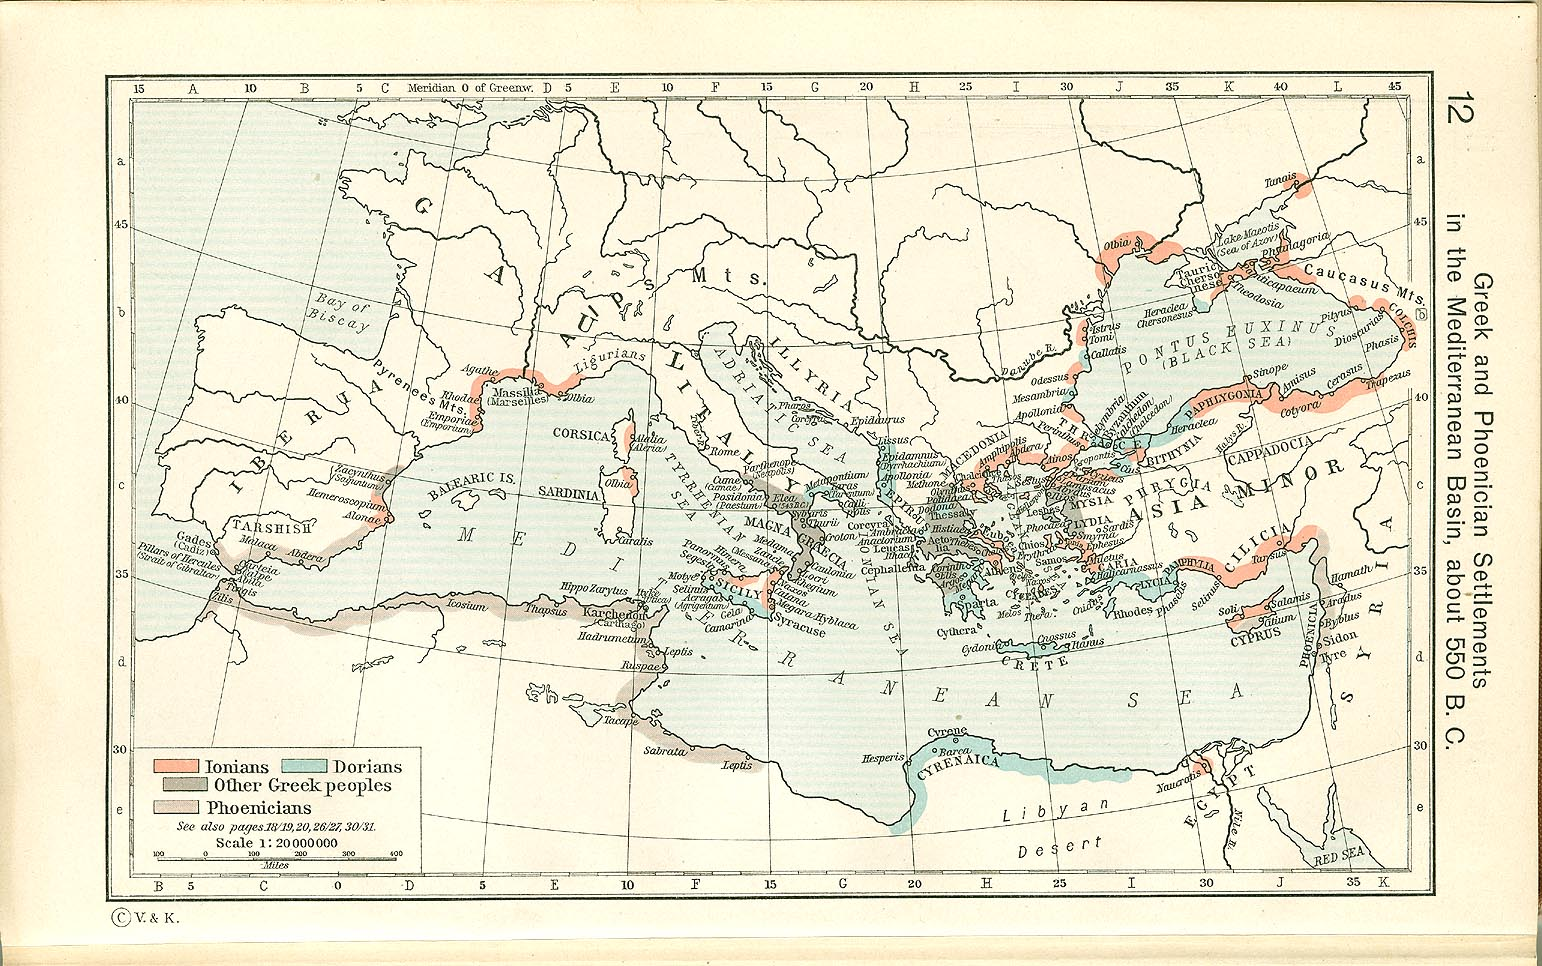 Europe Historical Maps